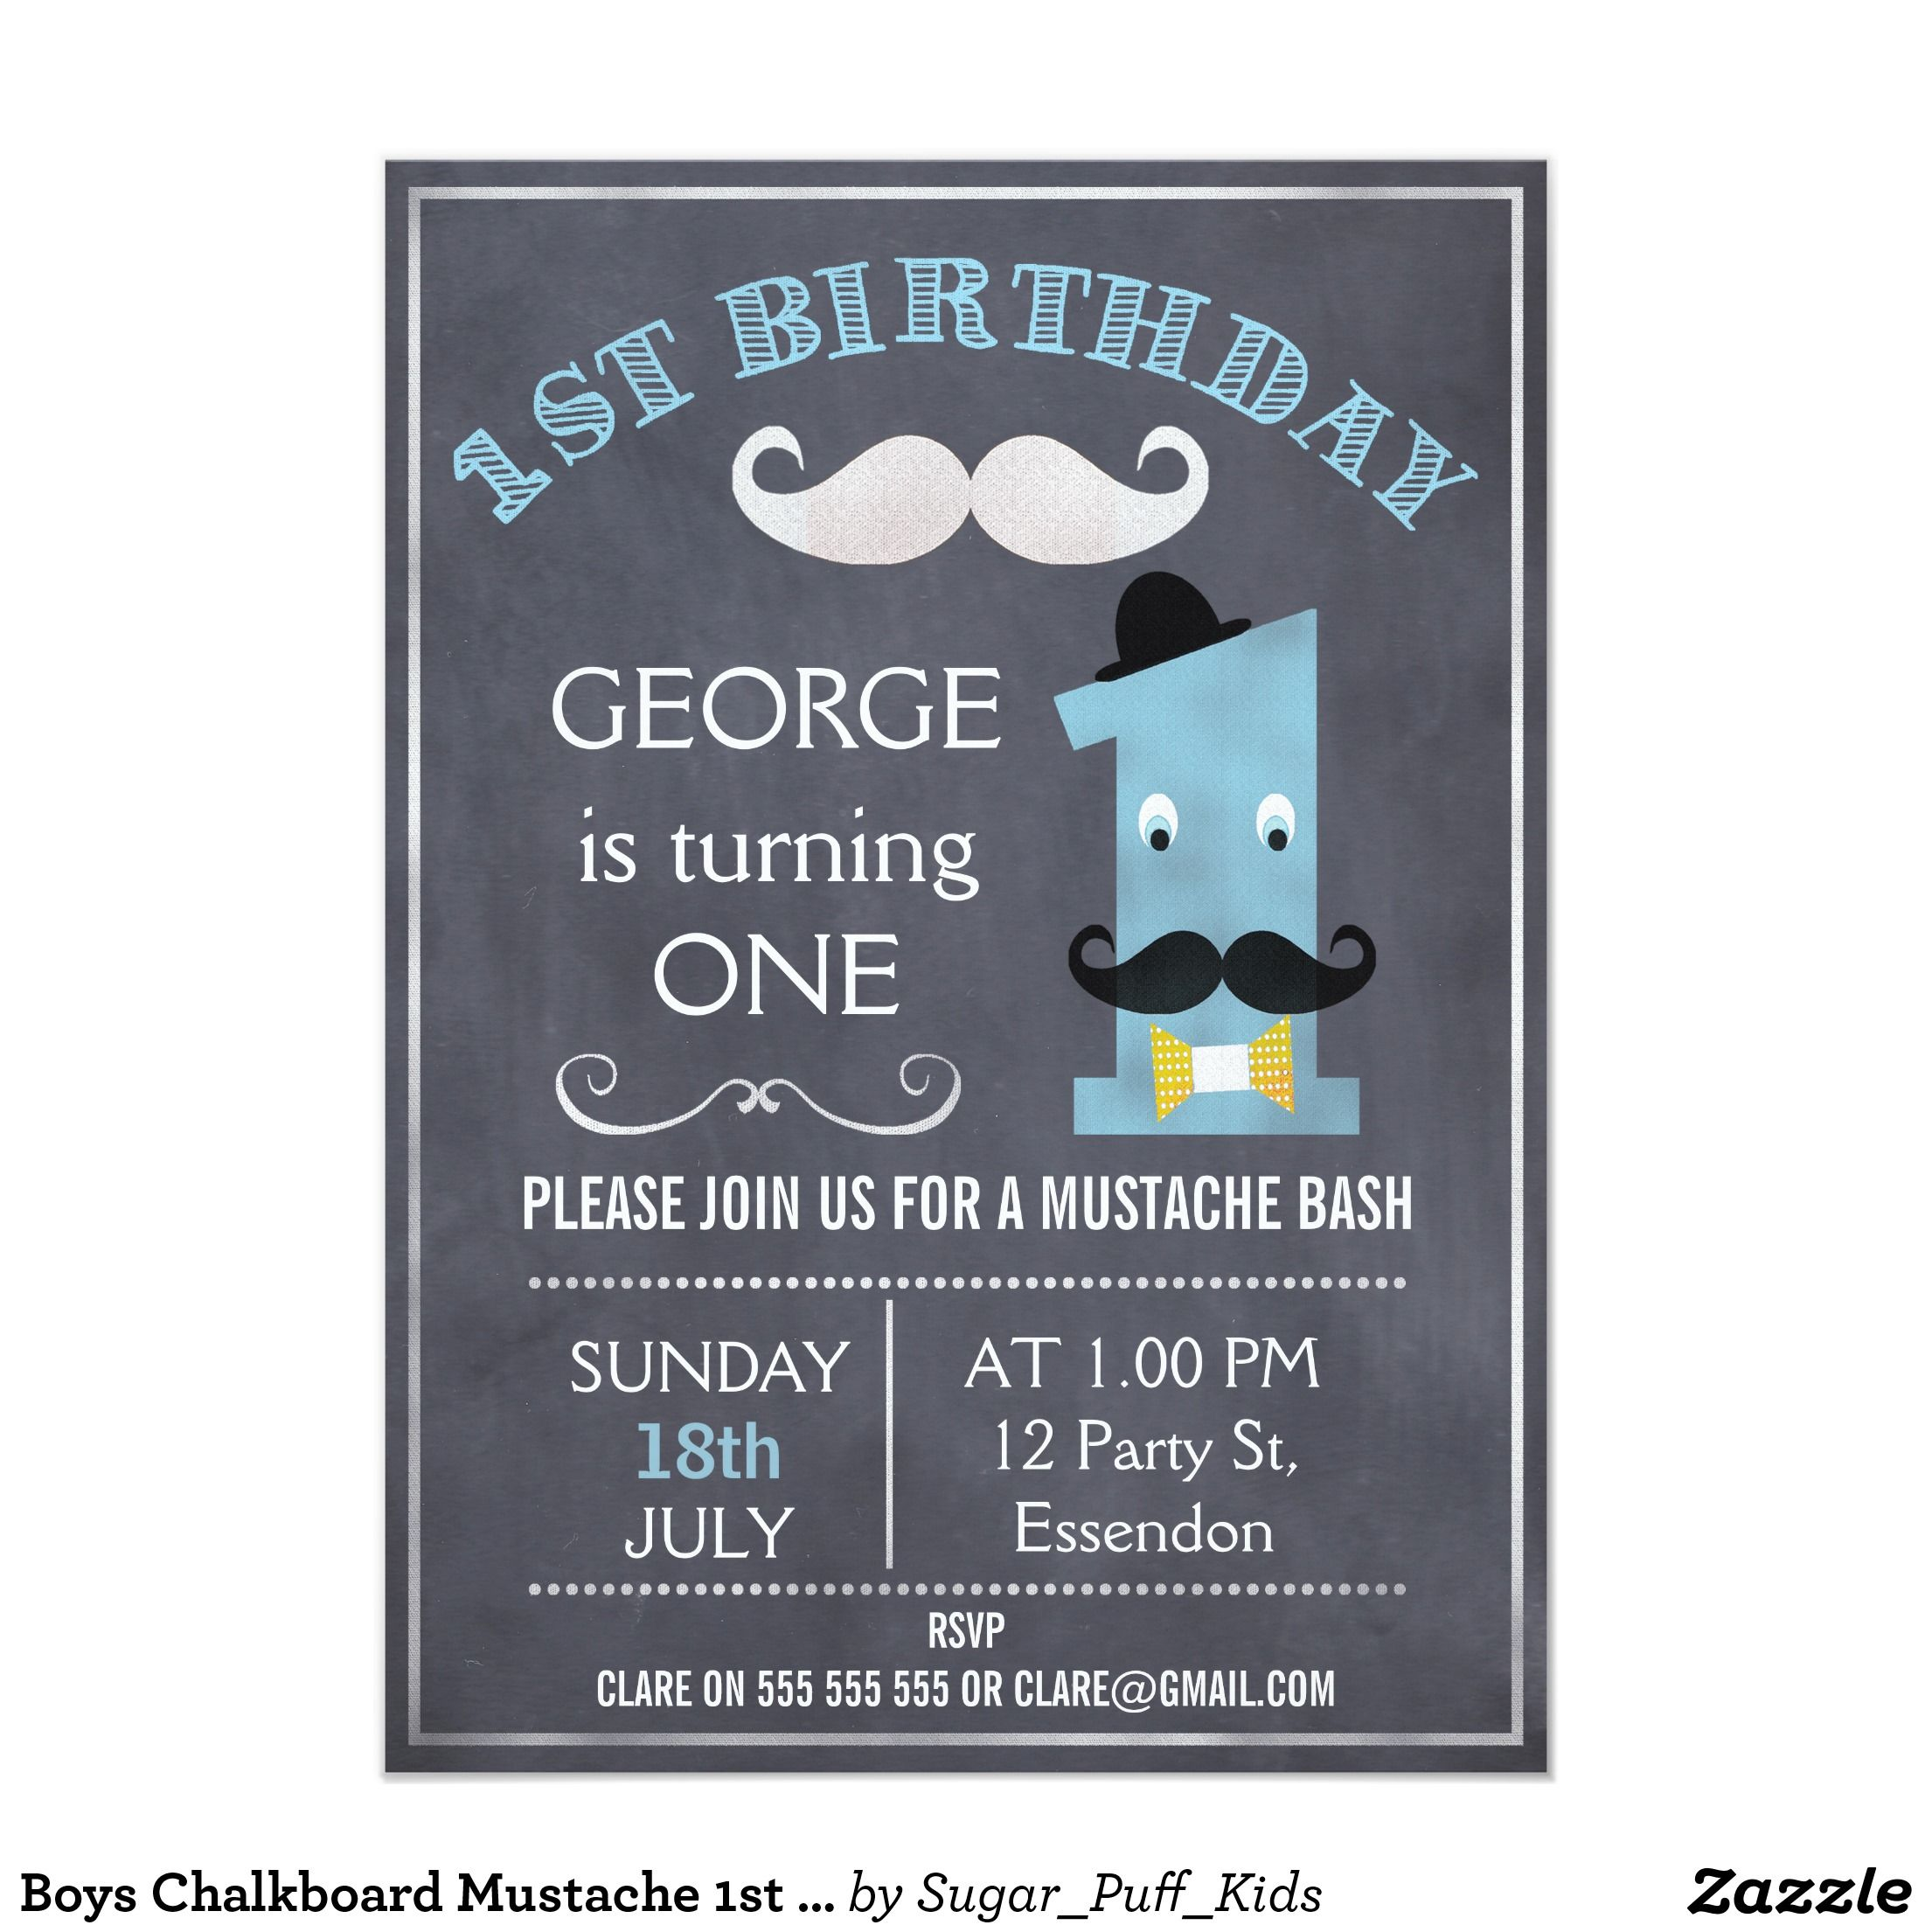 Boys Chalkboard Mustache 1st Birthday Invitation | Chalkboards ...